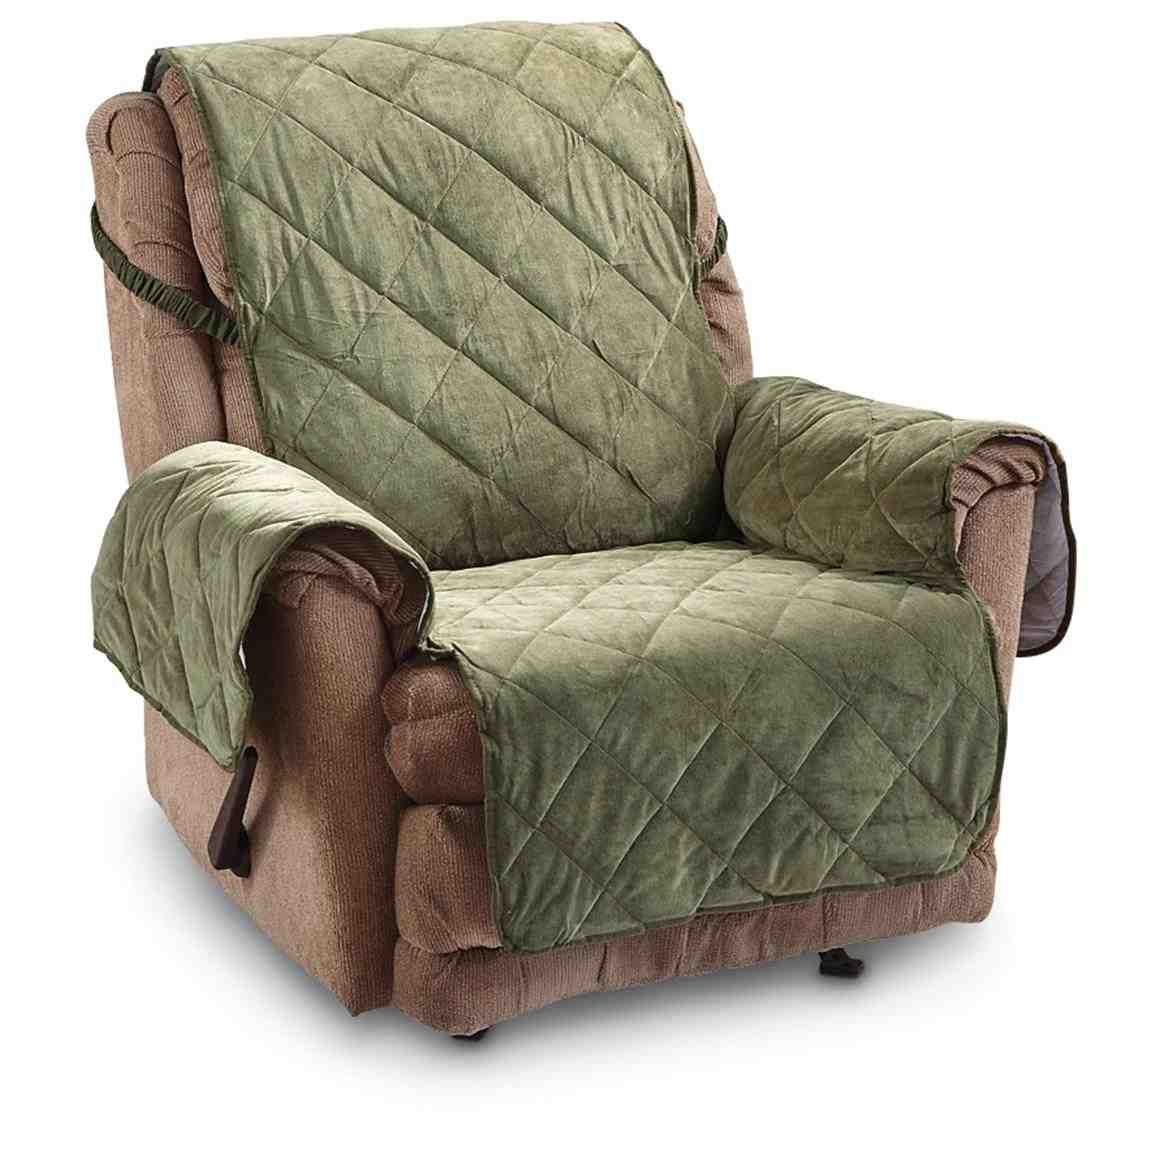 Recliner Covers Make An Old Chair Look New Again Home Furniture Design Recliner Cover Slipcovers For Chairs Furniture